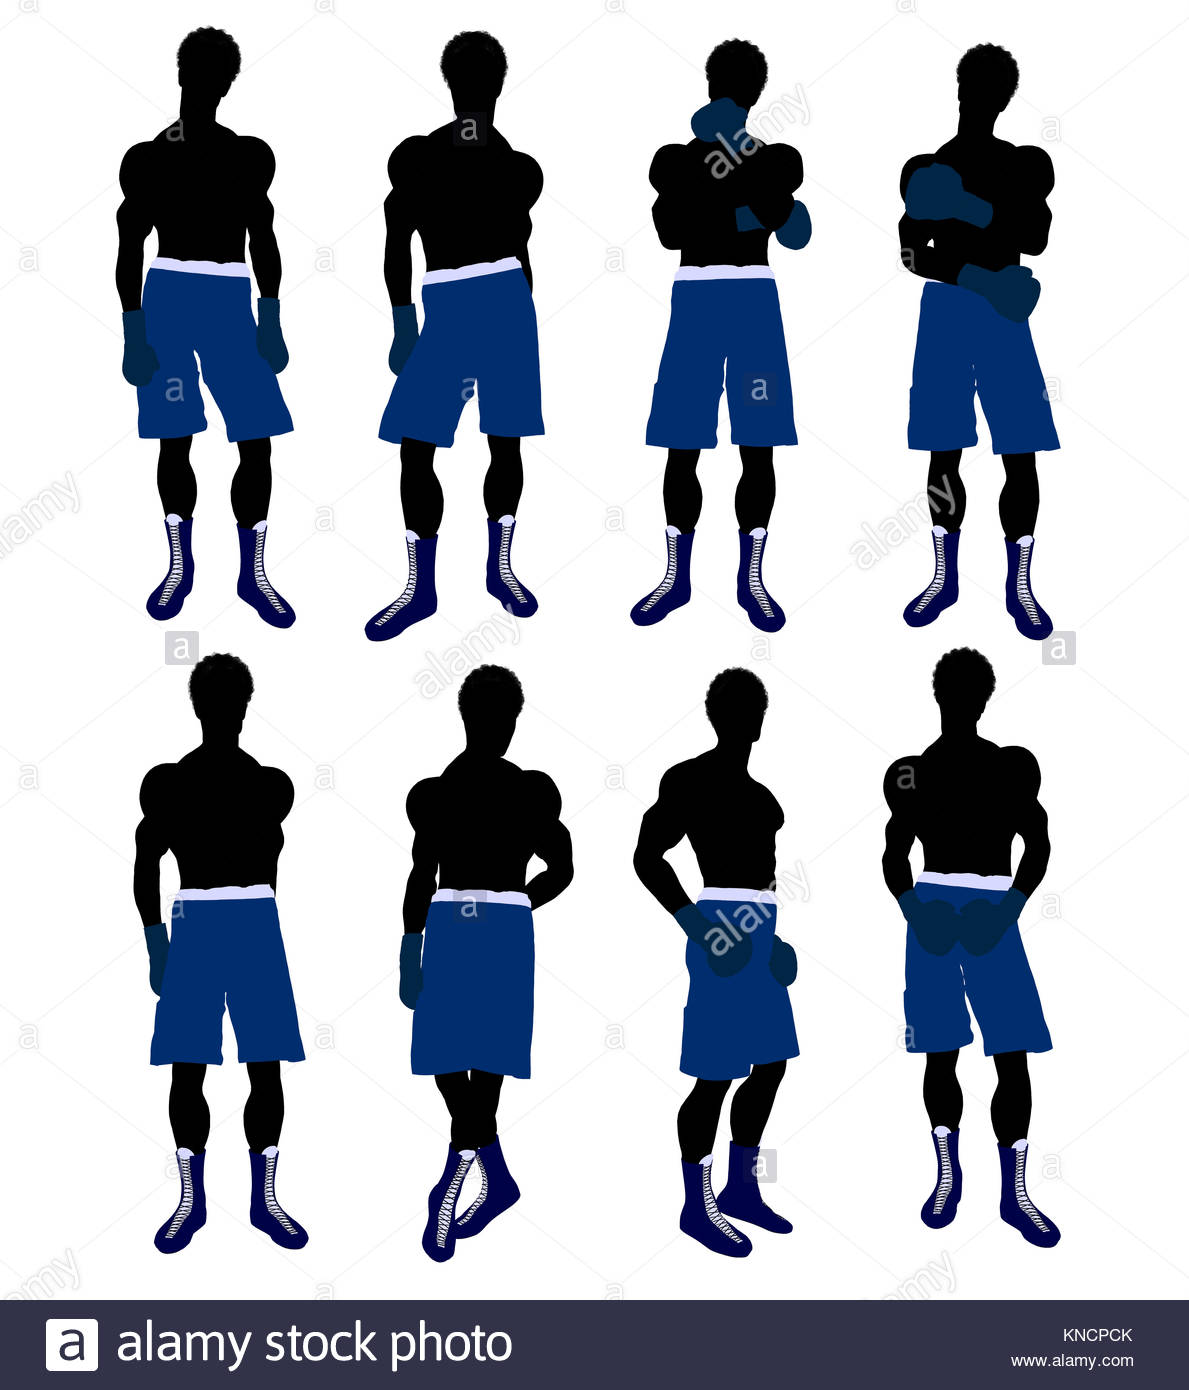 1189x1390fricanmerican Male Boxingrt Illustration Silhouette On